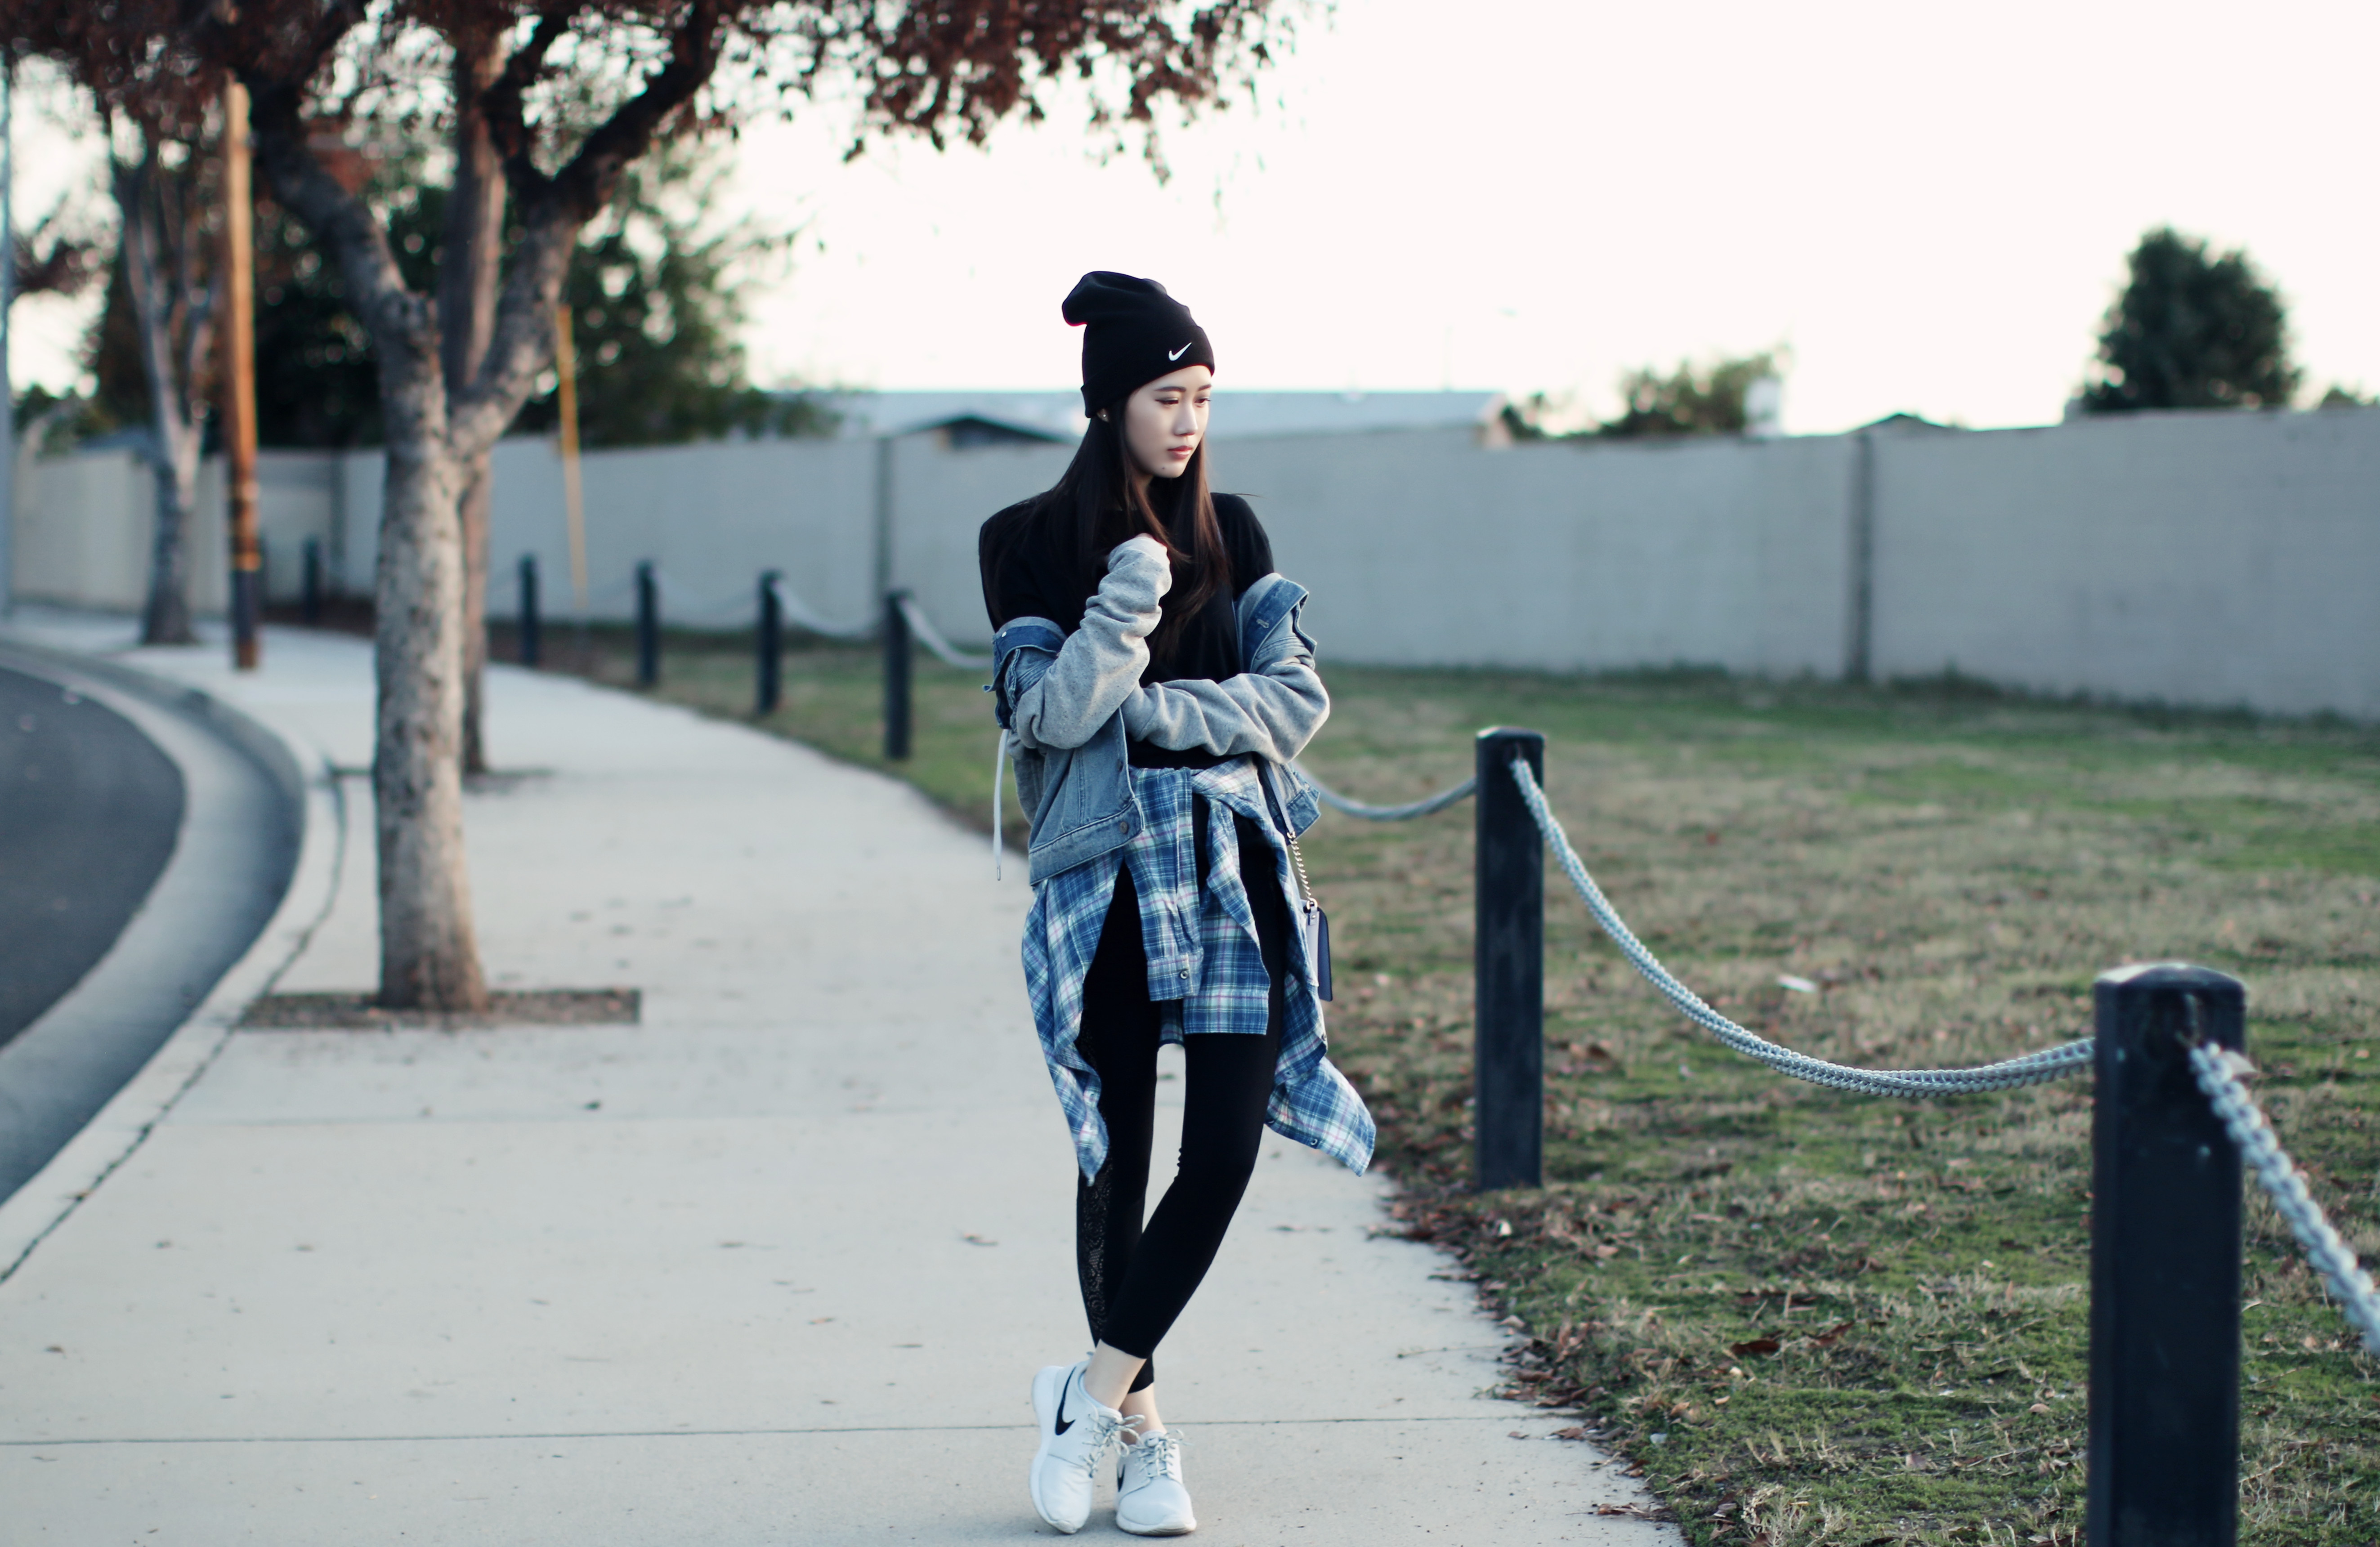 4313-ootd-fashion-style-outfitoftheday-wiwt-streetstyle-urbanoutfitters-hm-f21xme-nike-elizabeeetht-clothestoyouuu